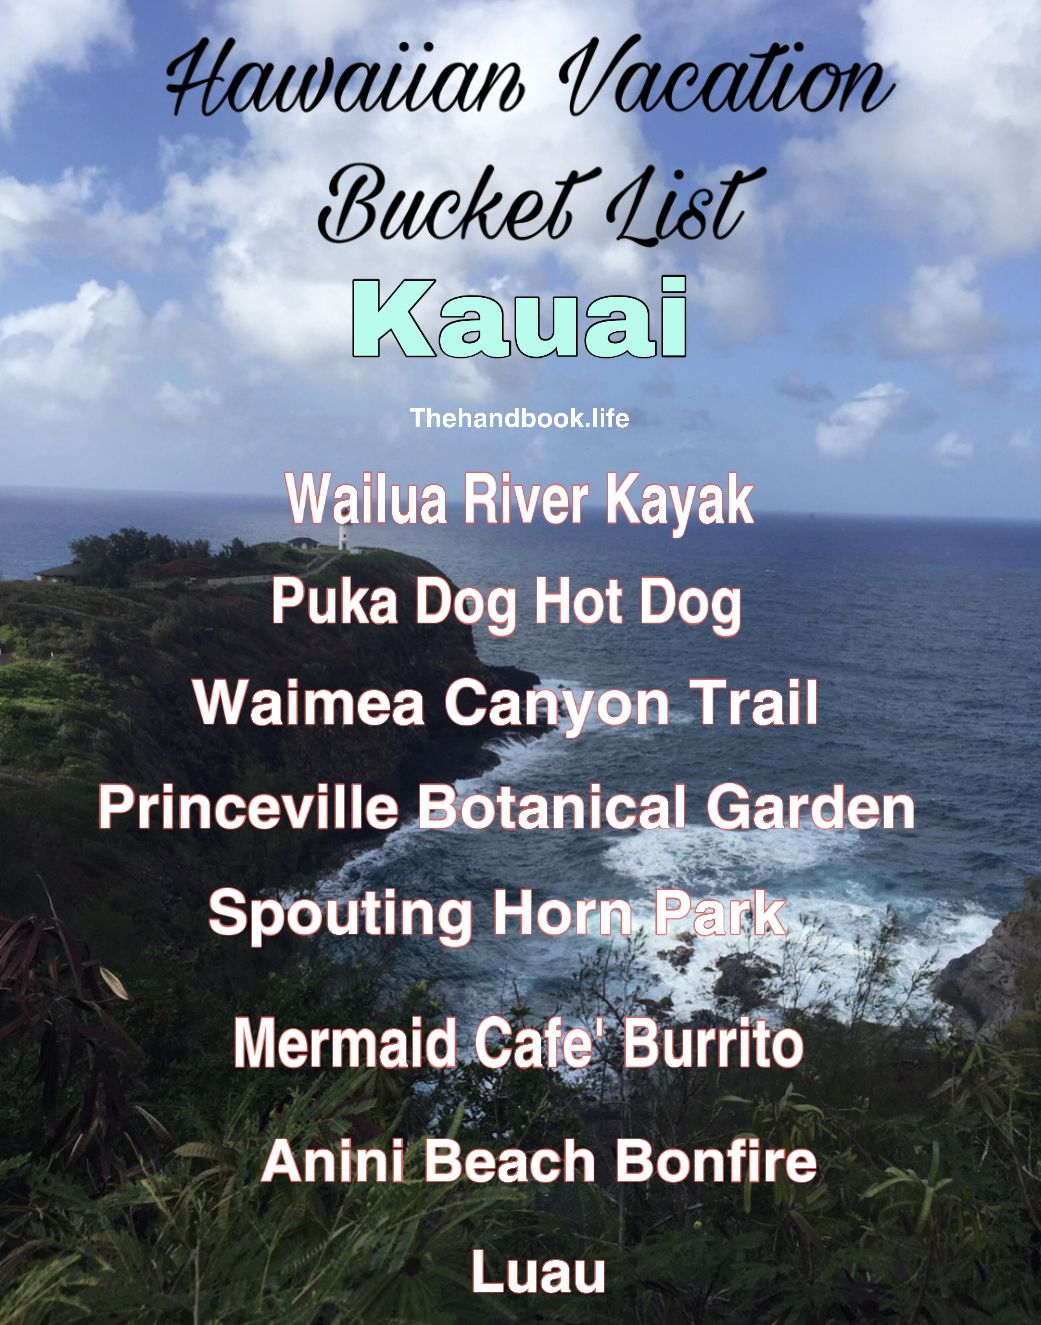 The key to a relaxing and fulfilling vacation is knowing what you want to get out of it and planning accordingly - even if that means not having a plan! #travelhawaii #tripplanning #organizedtraveler #hawaiianvacation #vacationbucketlists #kauai #travelkauai #familyvacation #tripplanner #hawaiibound